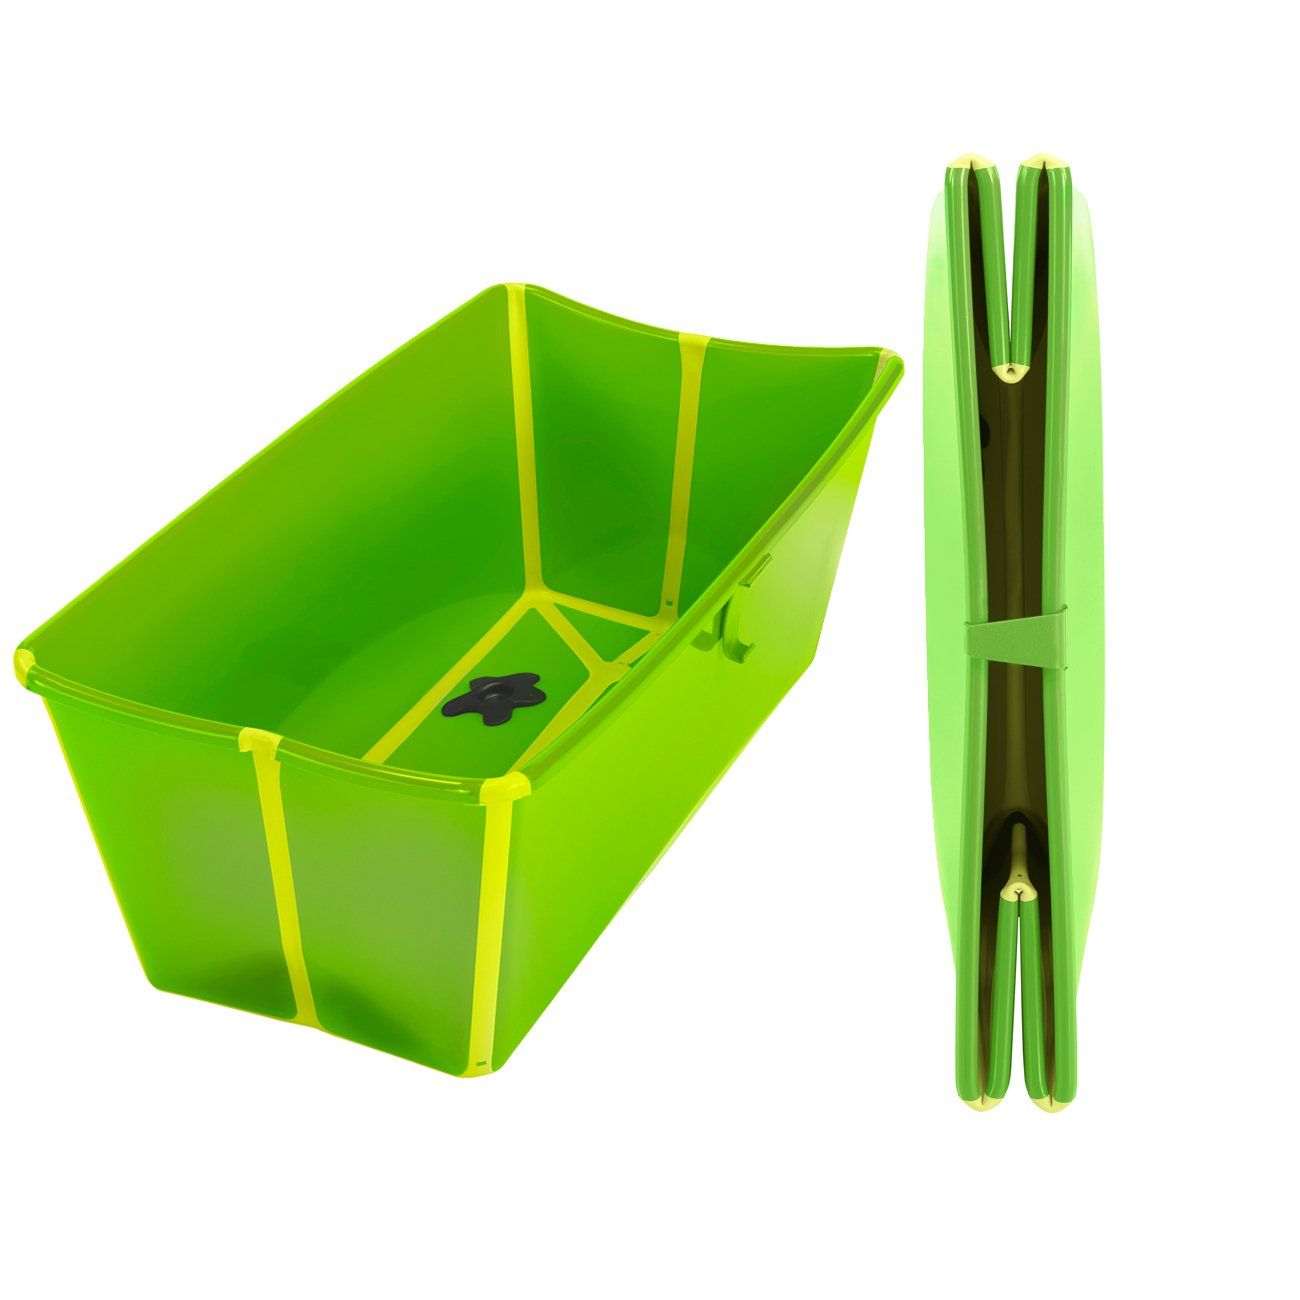 Charming Amazon.com : Prince Lionheart Flexibath Foldable Bathtub, Green  (Discontinued By Manufacturer) : Baby Bathing Products : Baby